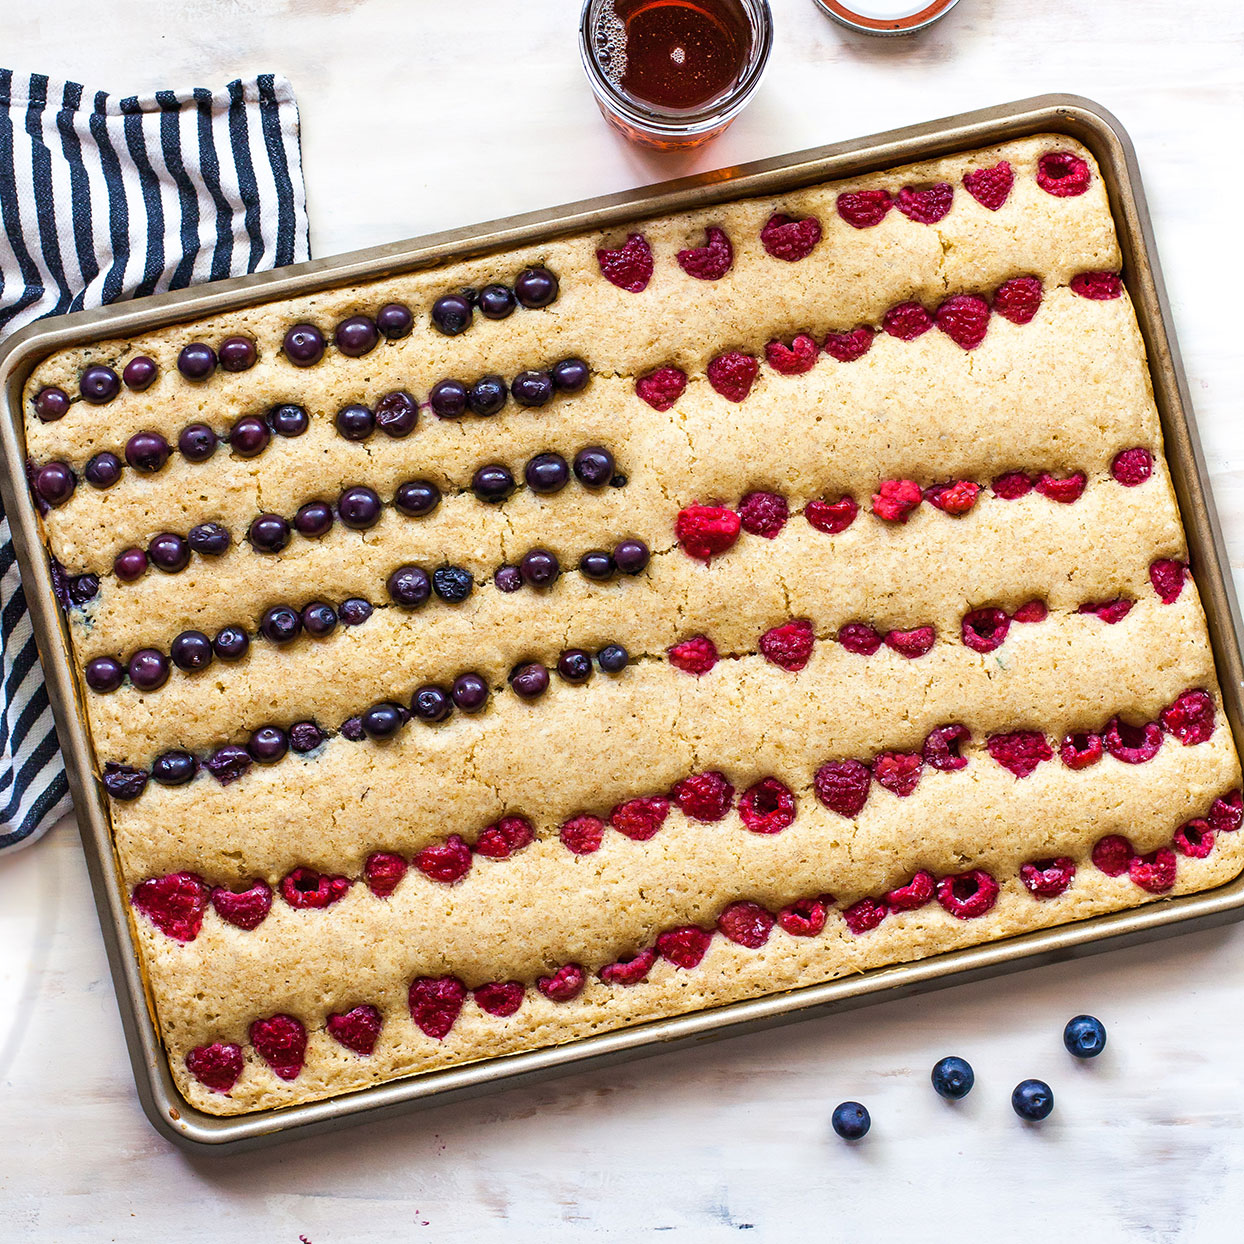 Get your Fourth of July off to the right start with this patriotic sheet-pan pancake! It's fun and easy to decorate with fresh summer fruit. Depending on the thickness of your batter, the fruit may slip under the surface while baking. Check it toward the end of the baking time and add more fruit to the top if needed. Source: EatingWell.com, June 2020